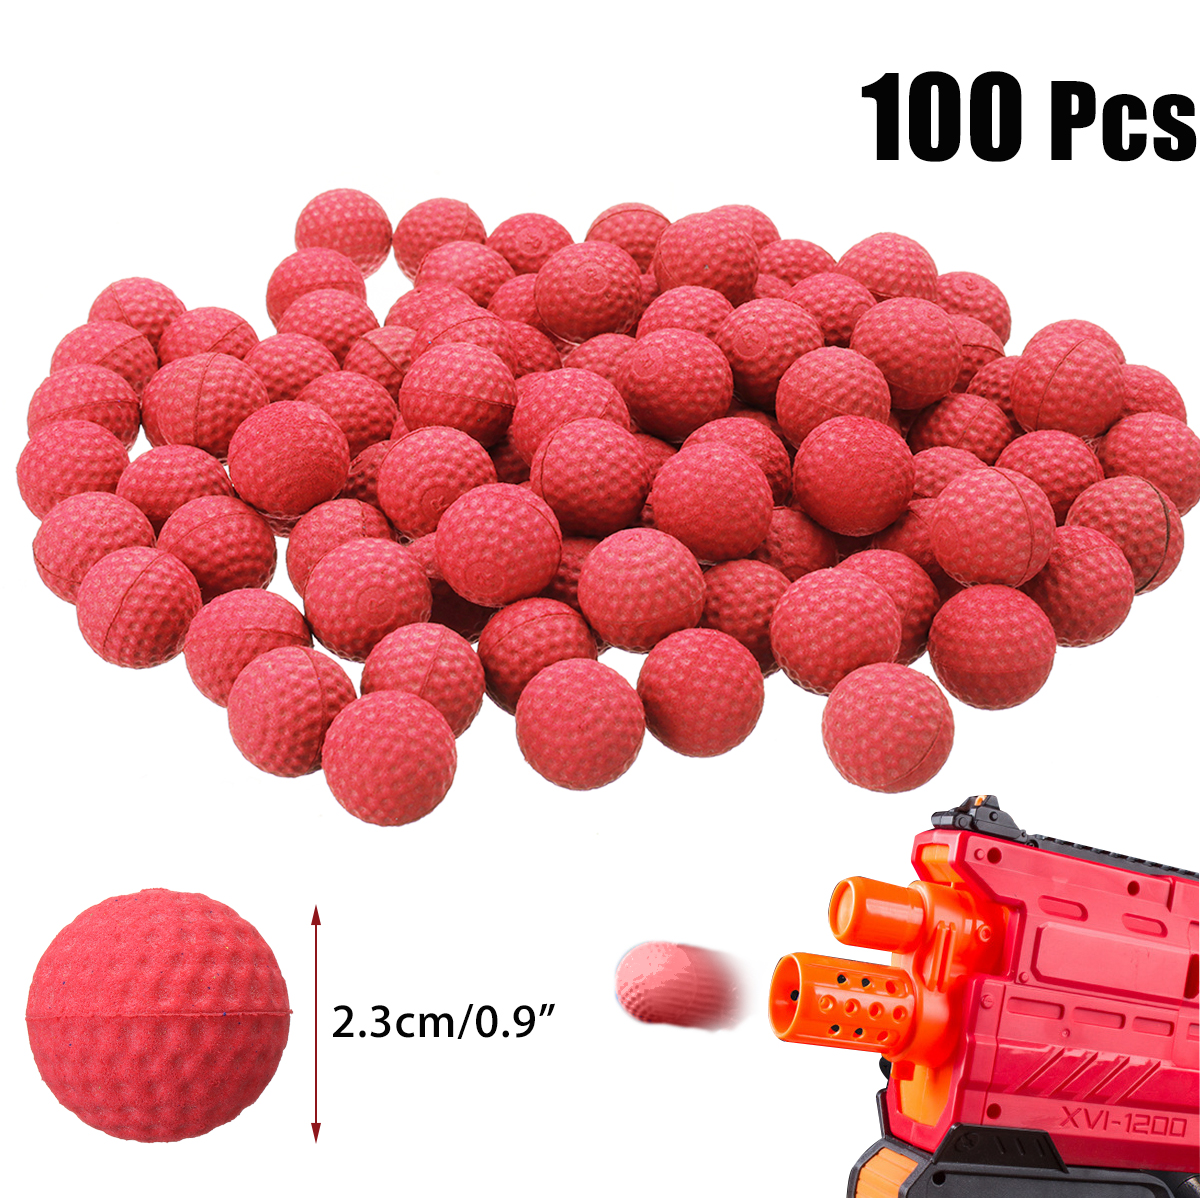 100Pcs 2.3cm PU Buoyancy Rounds Bullet Balls Kids Toy Ball for H